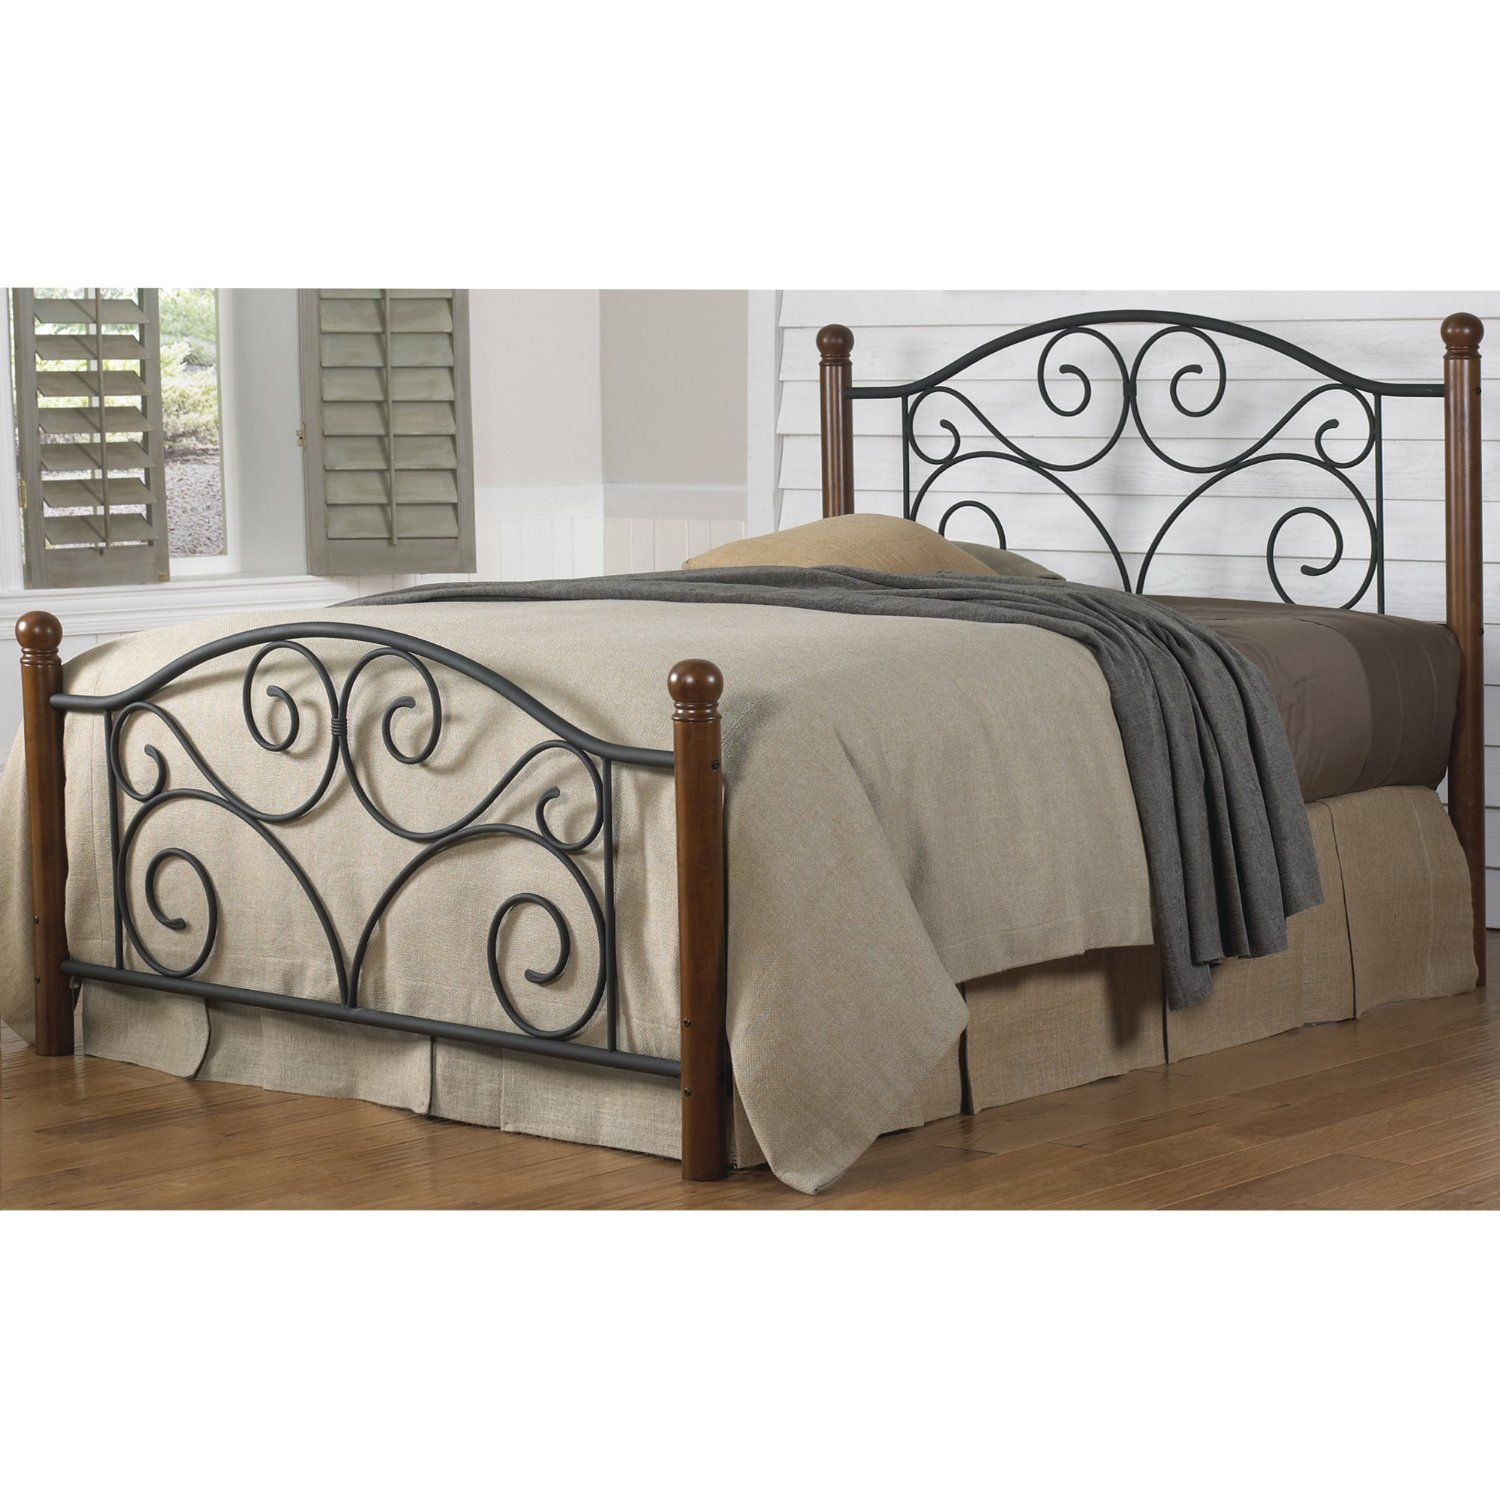 Bedroom Giselle Antique White Graceful Lines Victorian Iron Metal